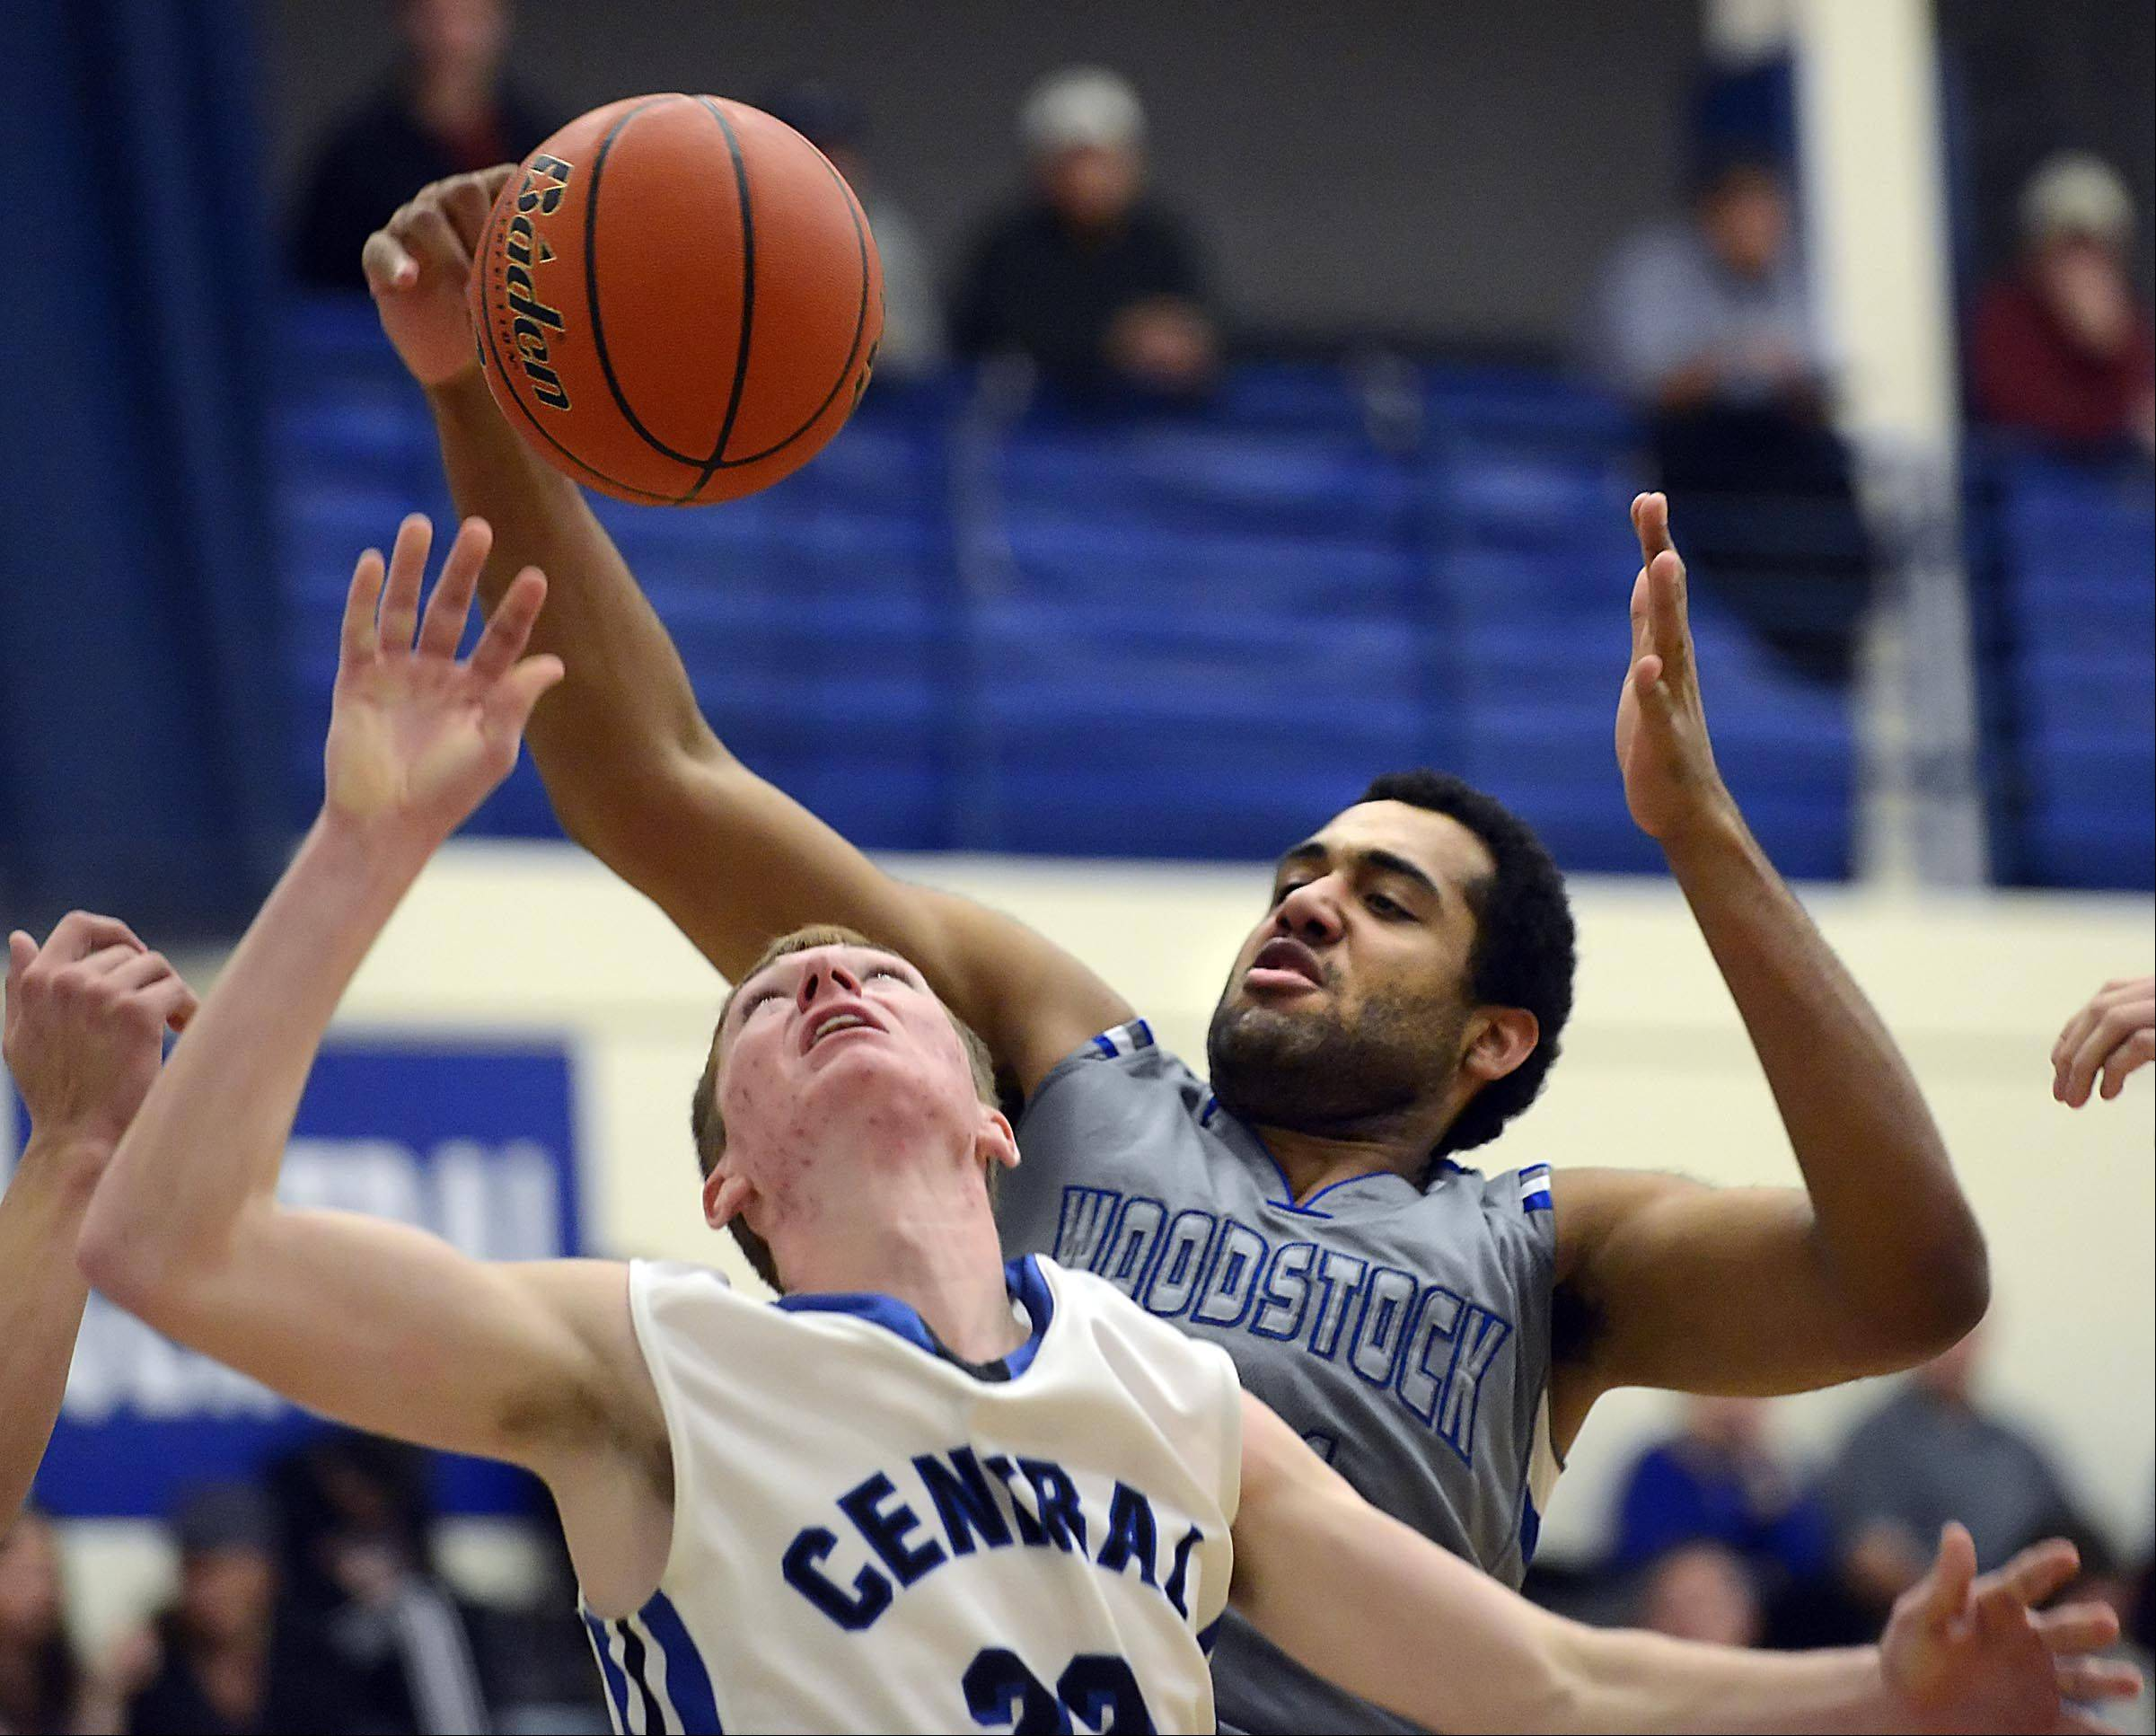 Images: Woodstock vs. Burlington Central boys basketball